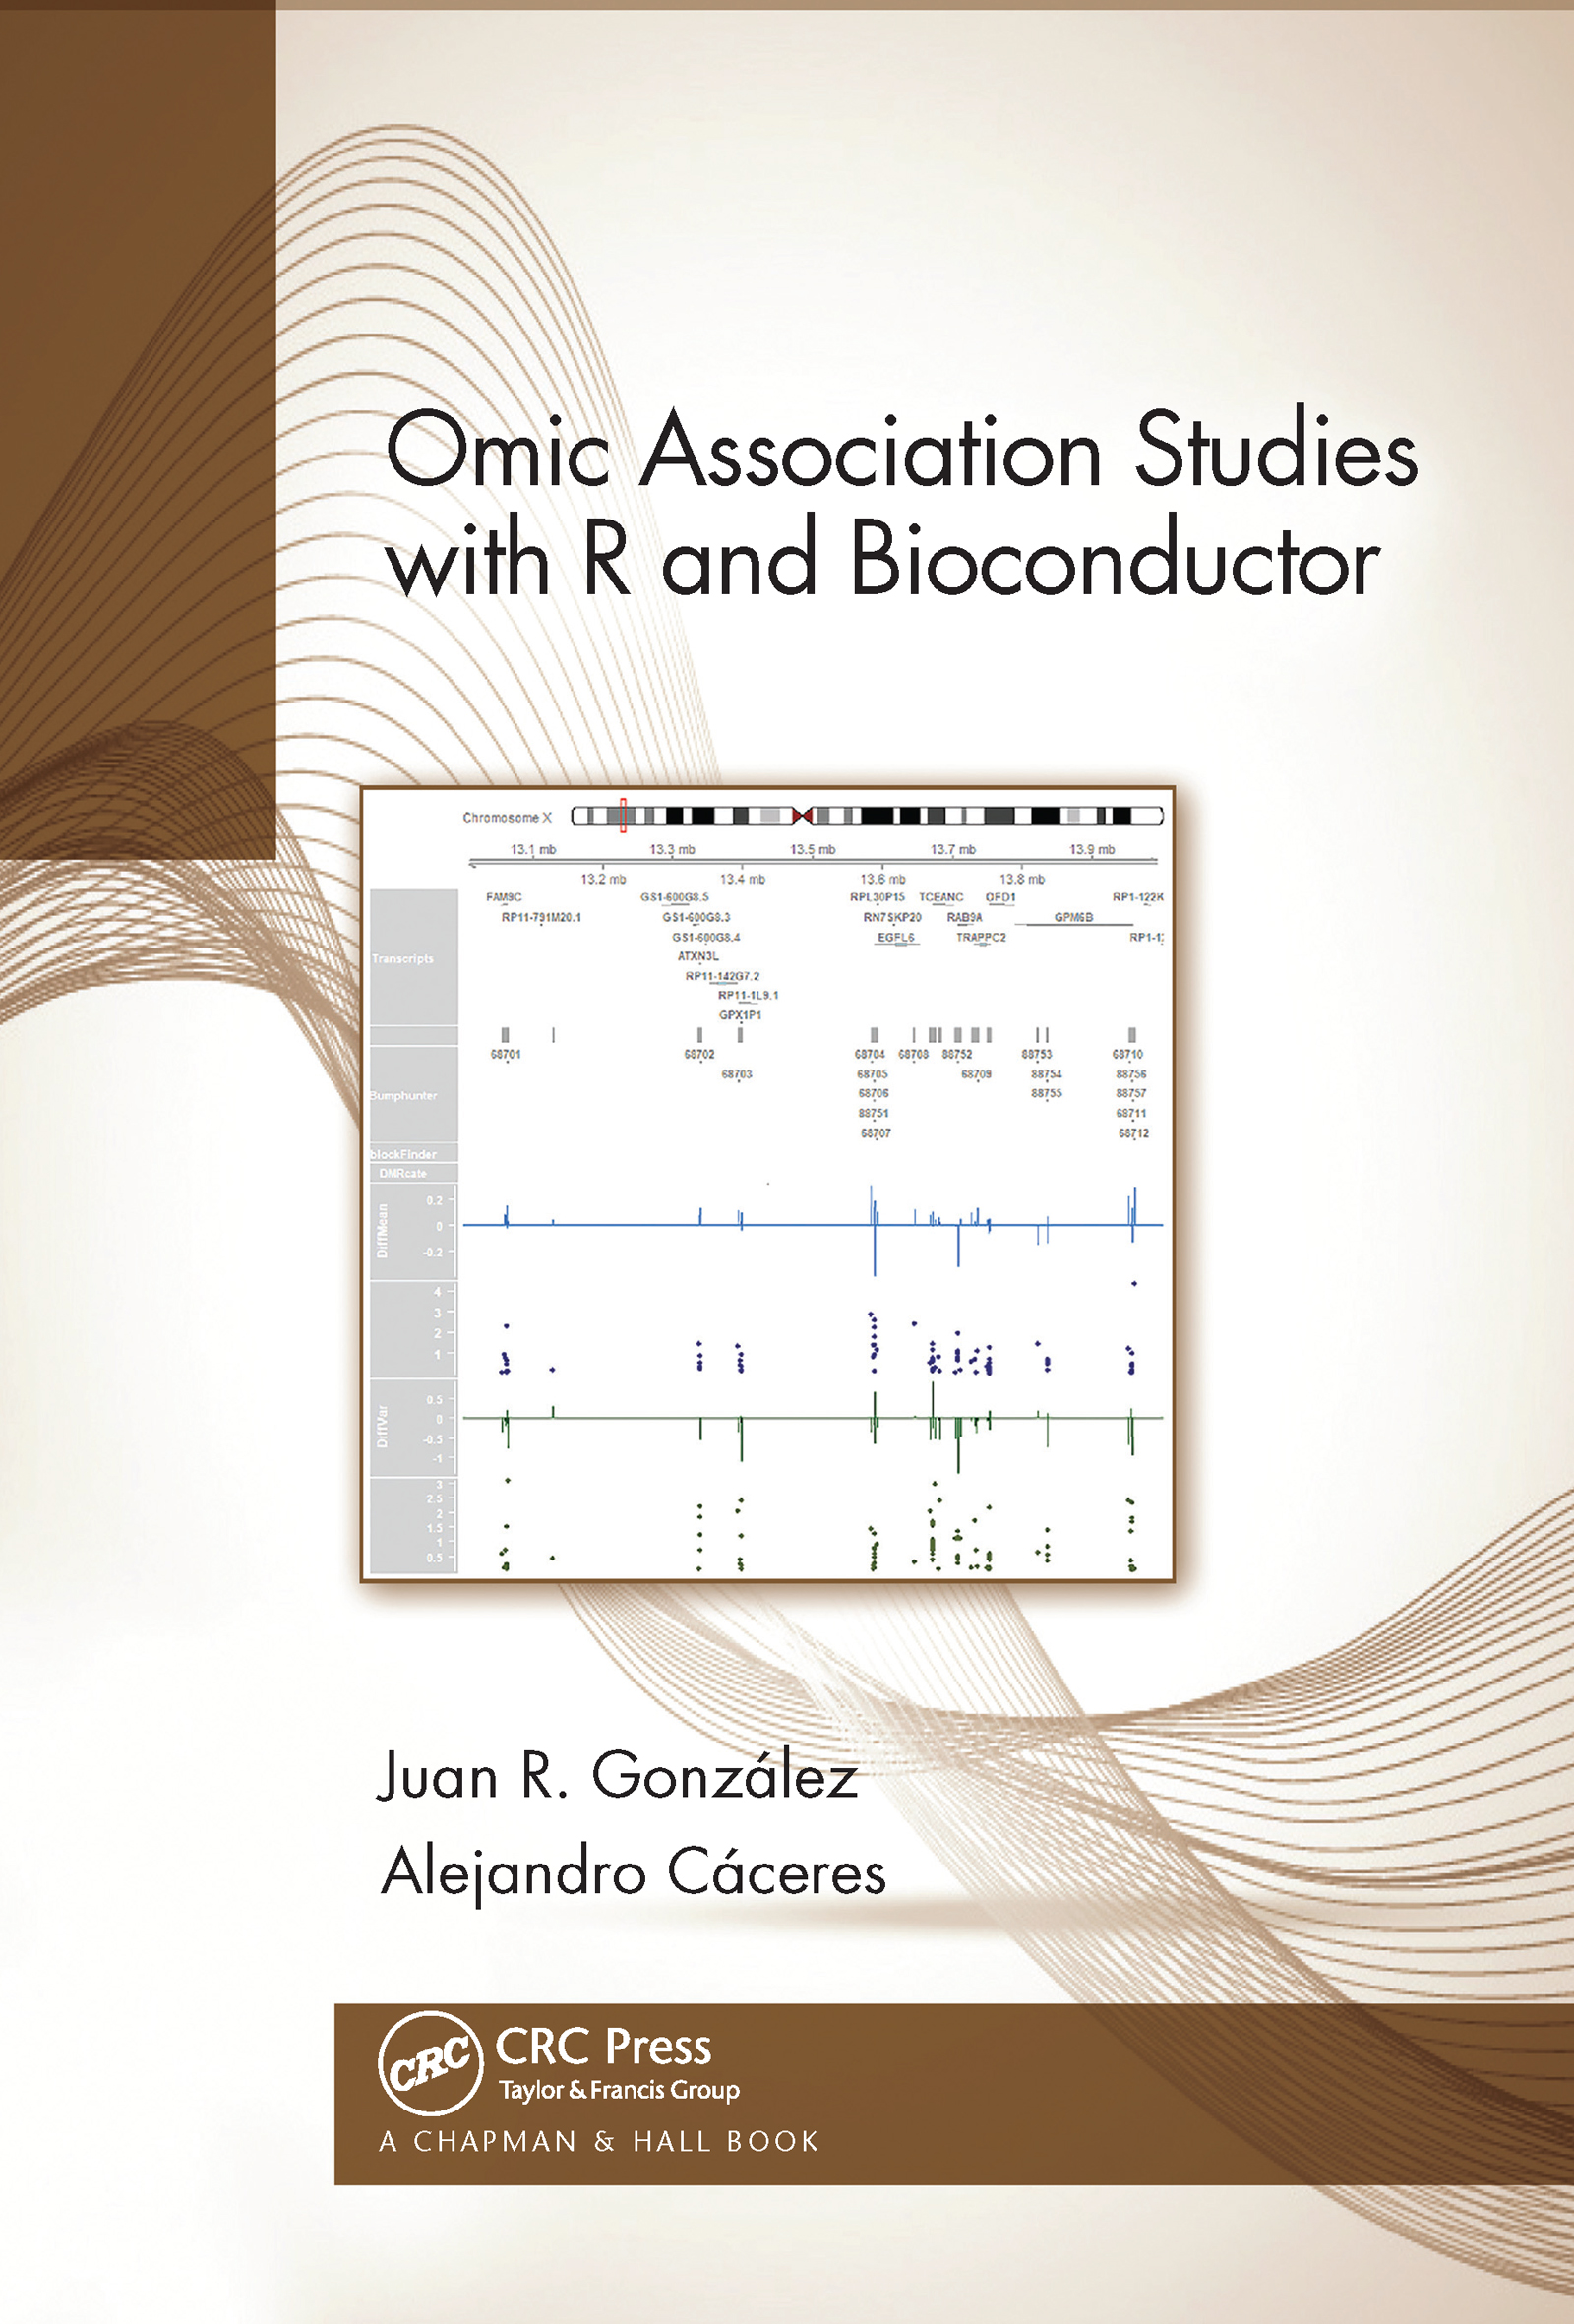 Omic Association Studies with R and Bioconductor